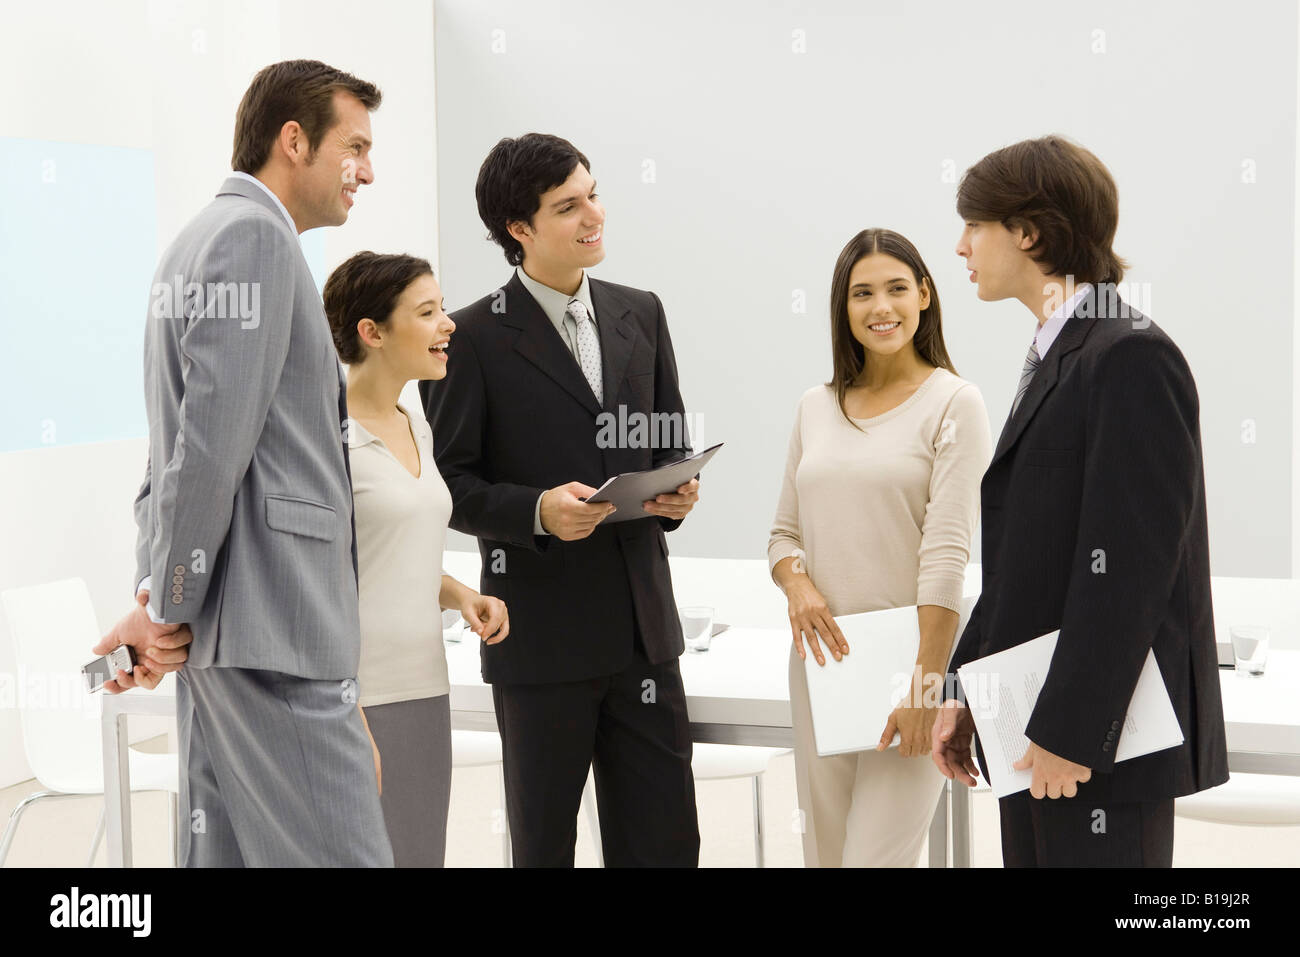 Group of business associates standing together, smiling, chatting - Stock Image